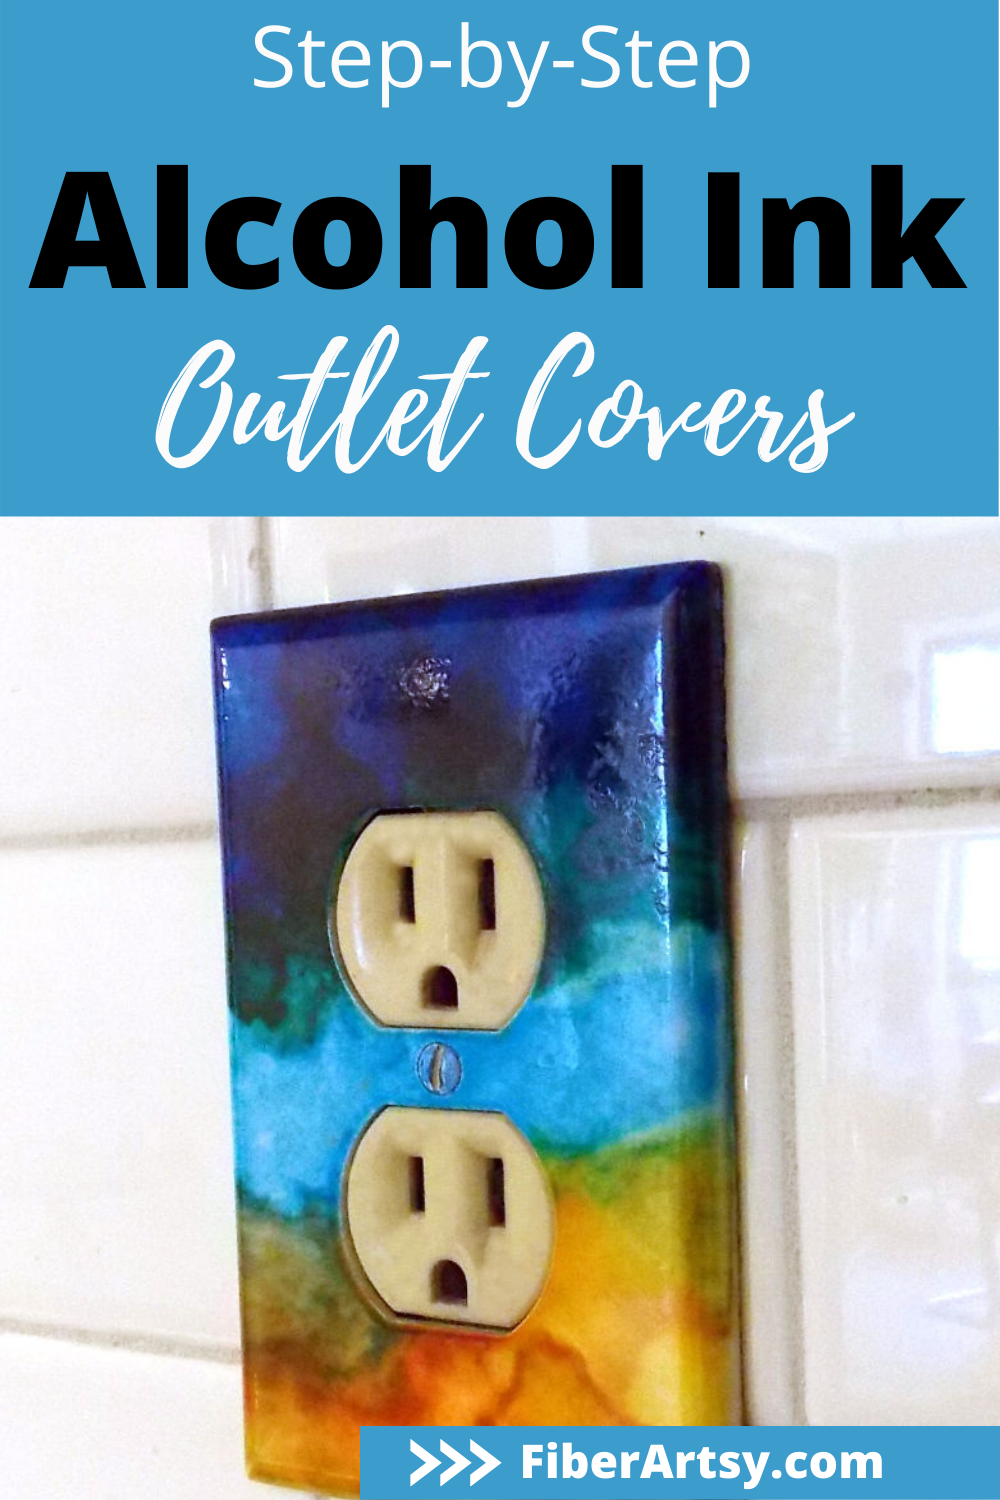 How To Use Alcohol Inks On Switch Plates Fiberartsy Com Alcohol Ink Decorating On A Budget Alcohol